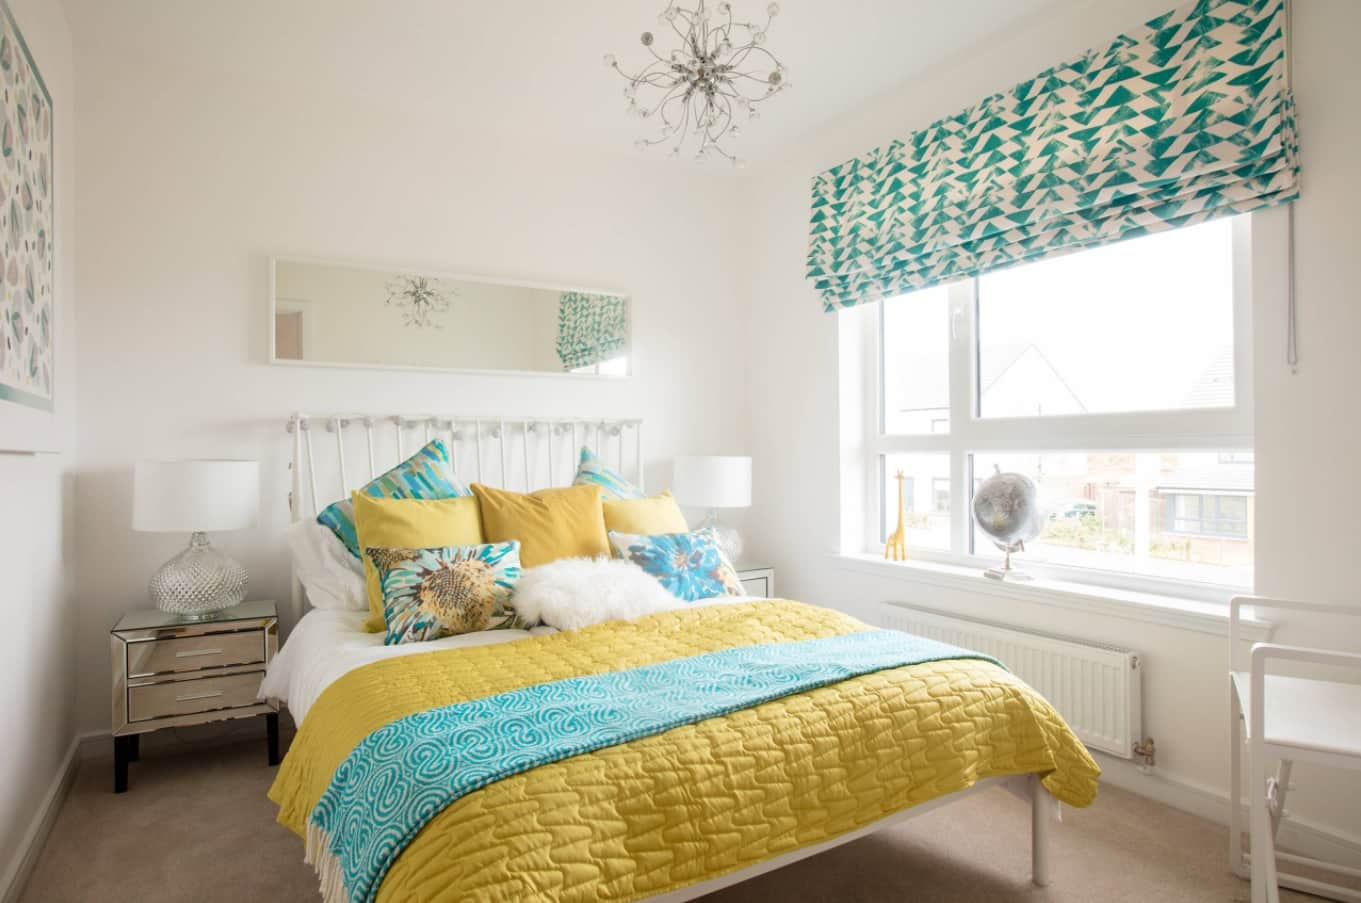 4 Must-Have Bed Coverings You Cannot Miss. Yellow coverlet for the modern bedroom interior in white with floral motif on turquoise roller blinds